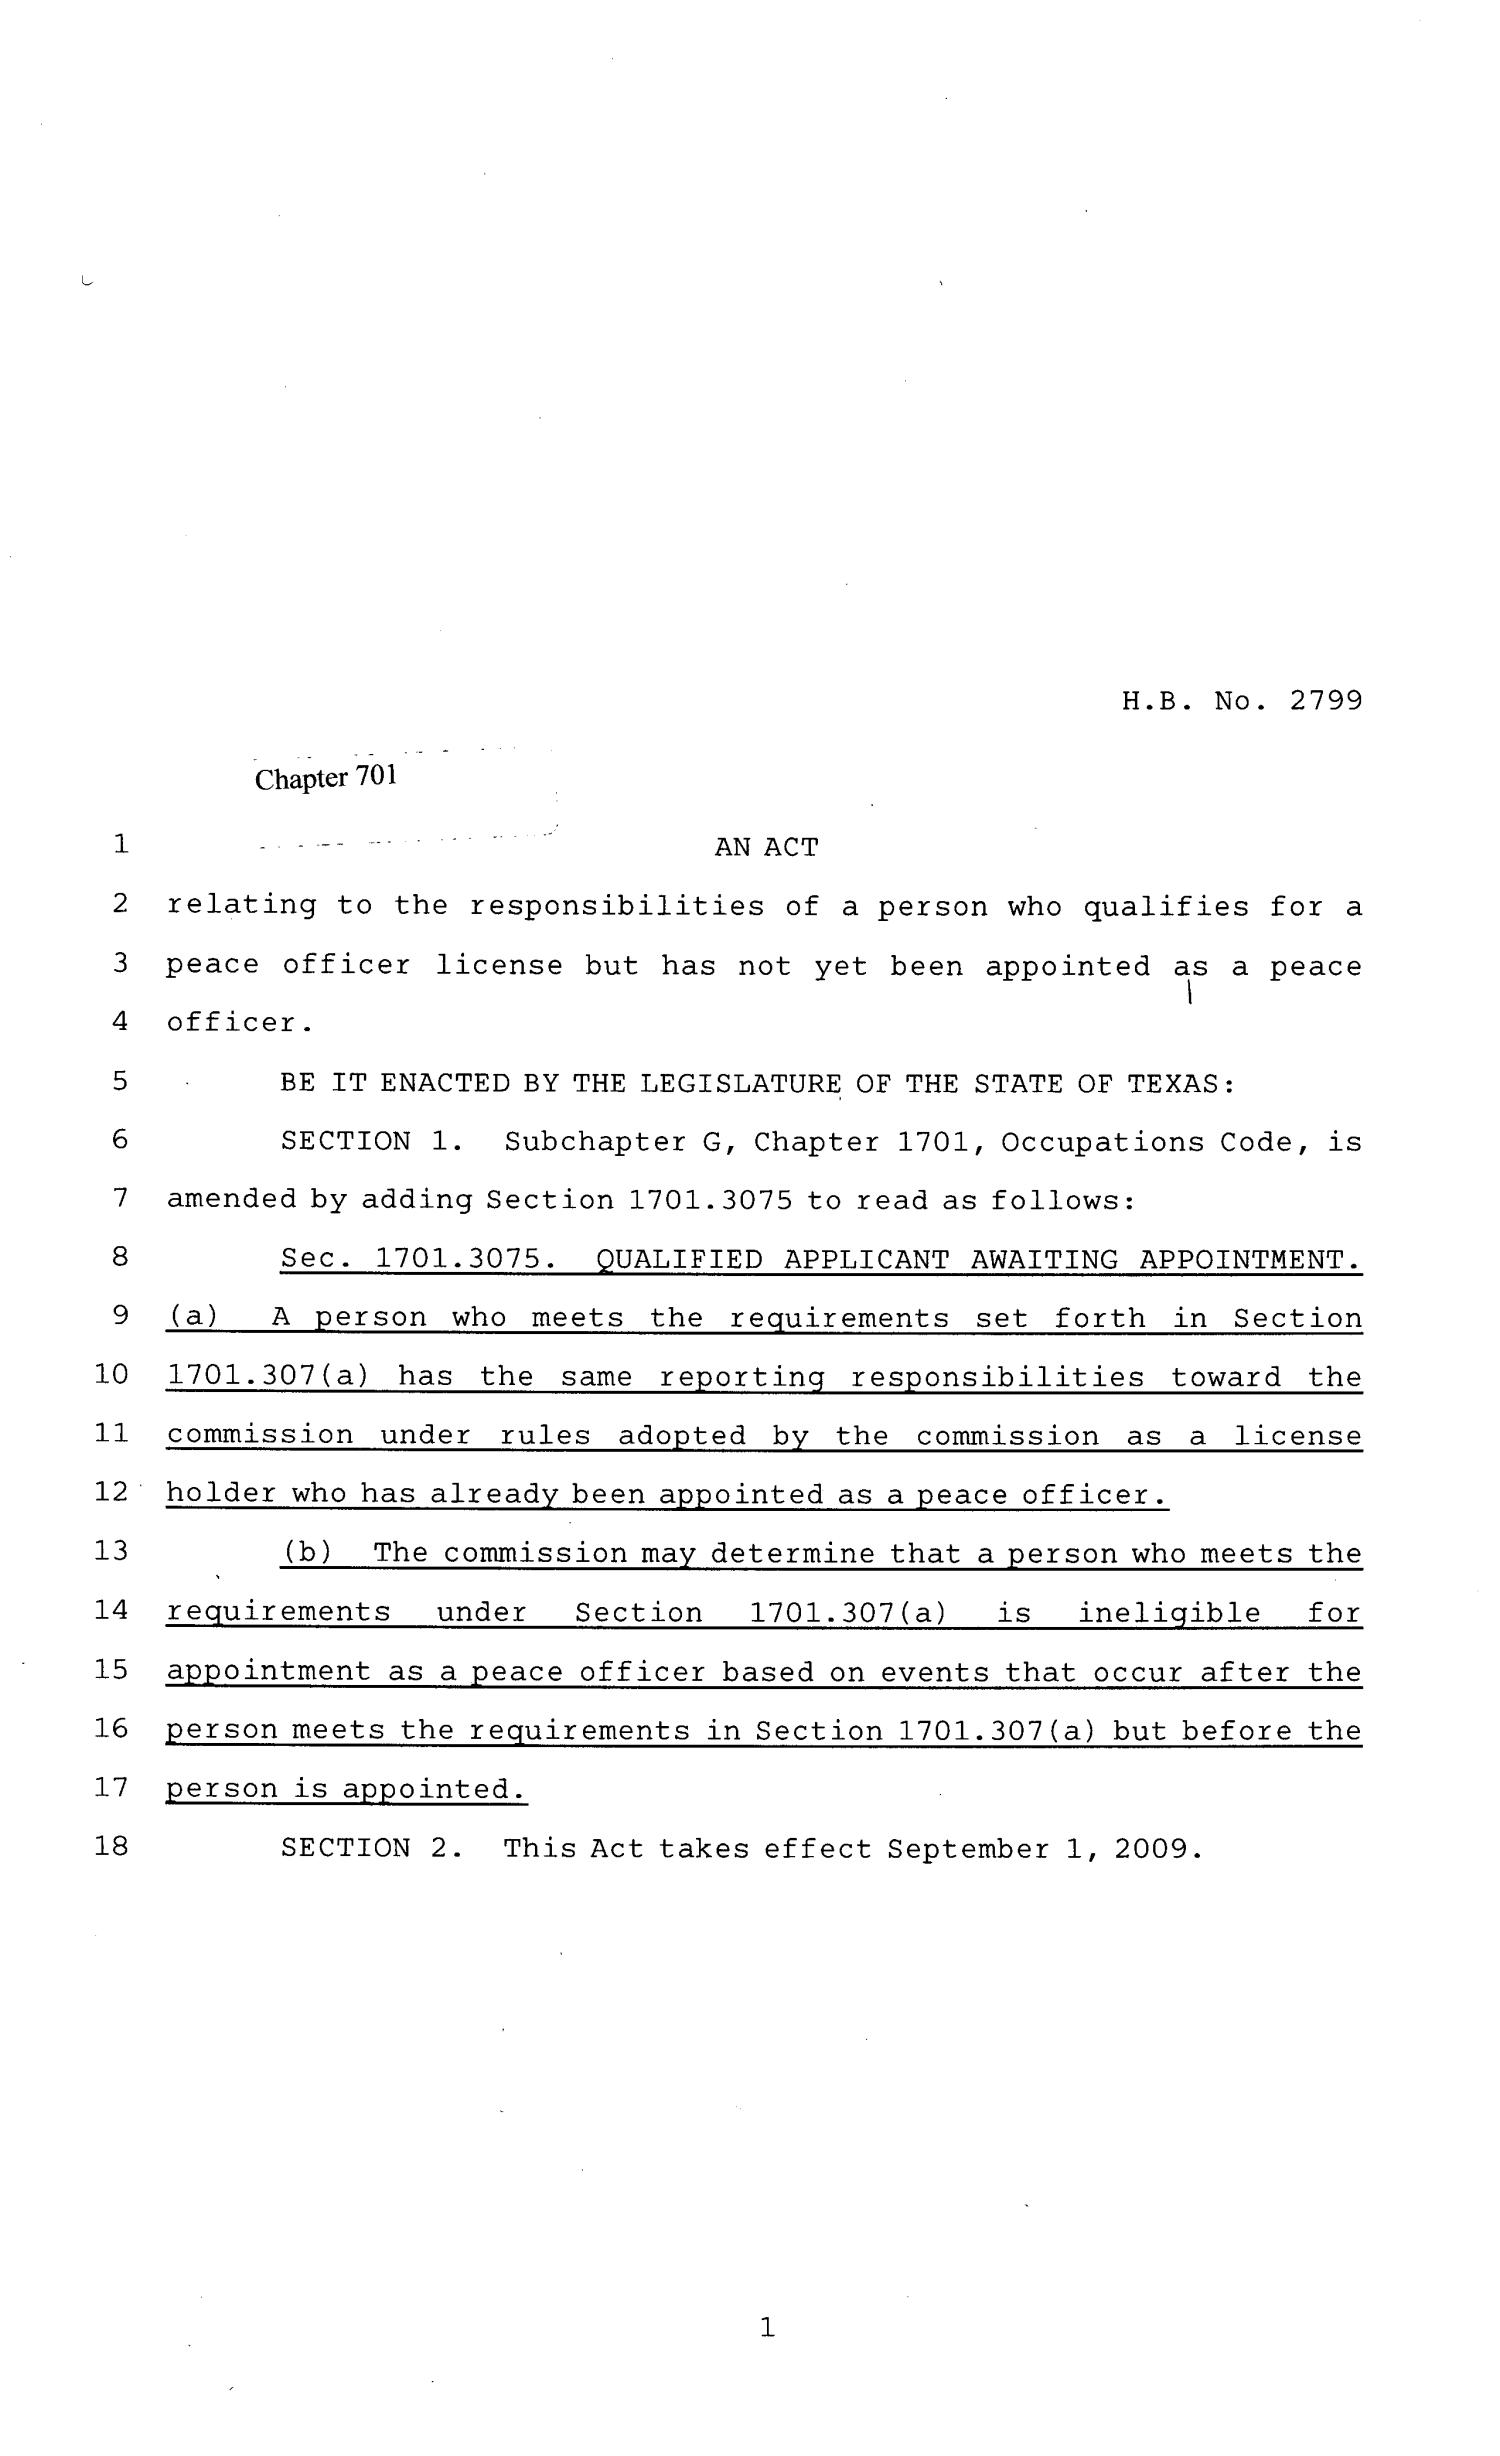 81st Texas Legislature, Regular Session, House Bill 2328, Chapter 701                                                                                                      [Sequence #]: 1 of 2